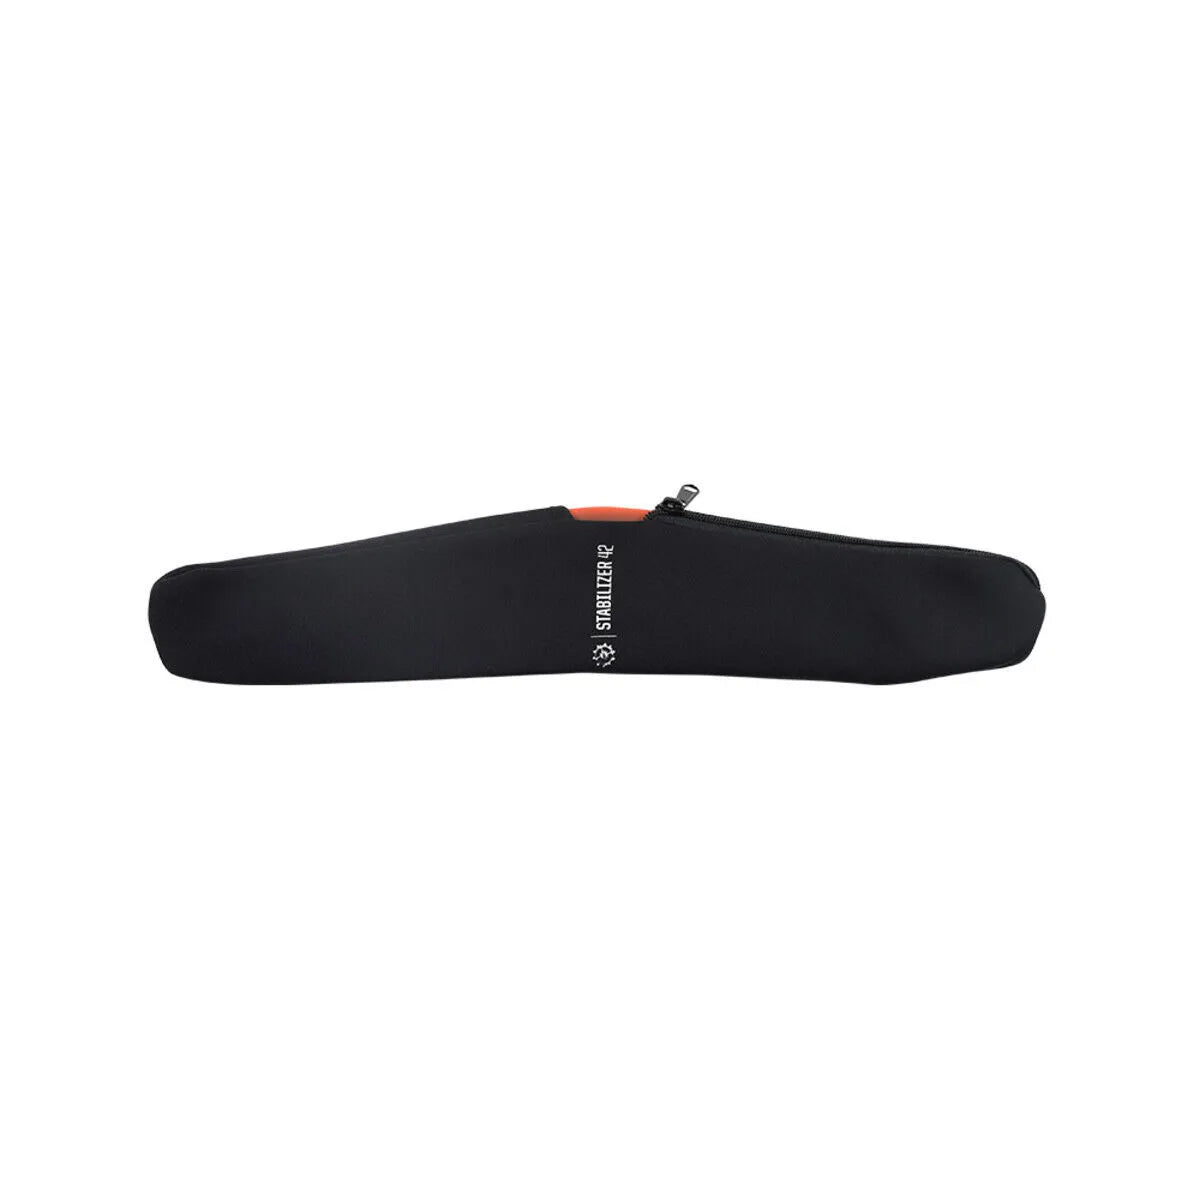 HOVER GLIDE REAR STABILIZER WING NEOPRENE COVER